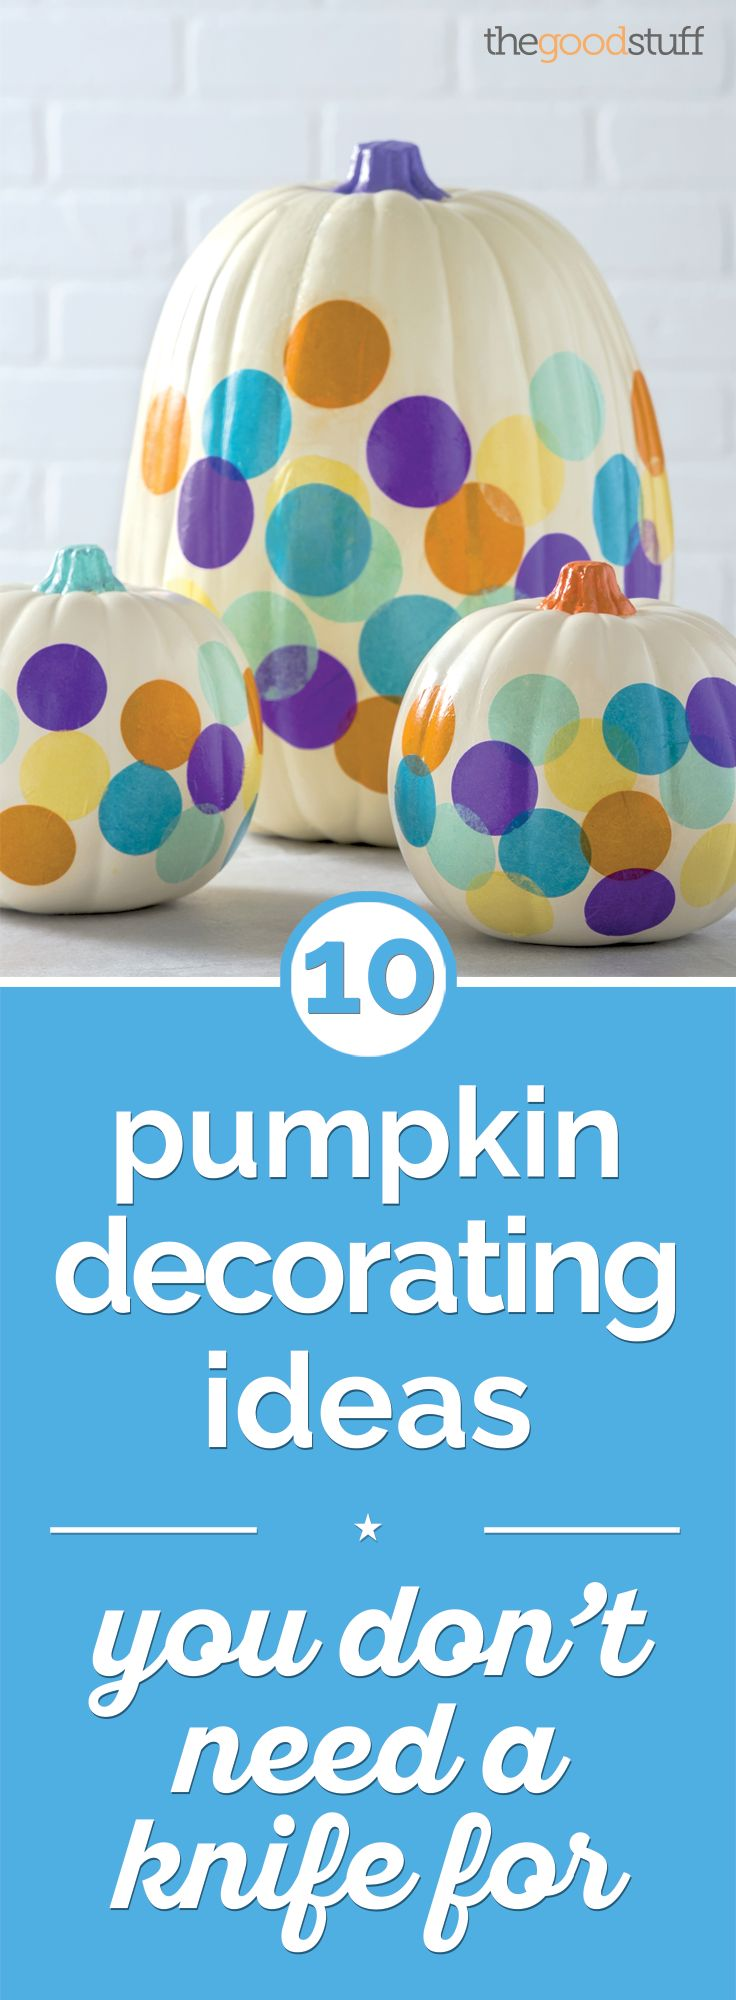 Looking for a mess-free way to decorate pumpkins? 10 ideas we love including these adorable Confetti Pumpkins!